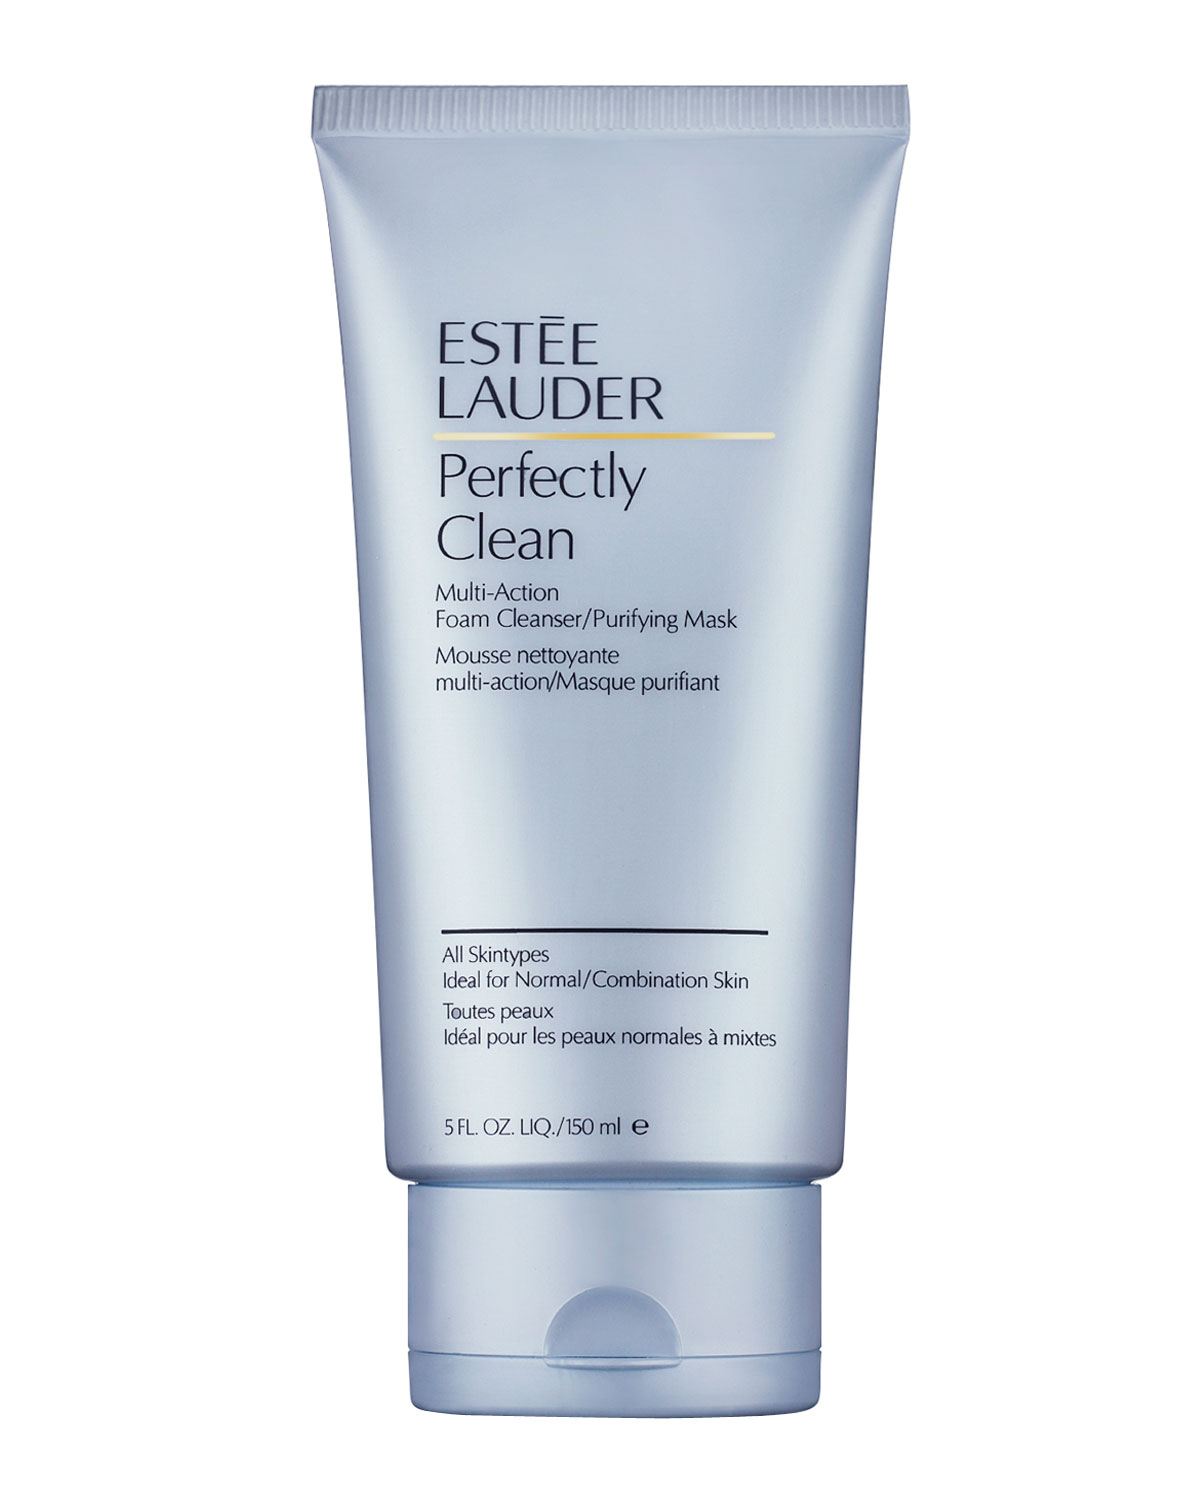 Estee Lauder 5.0 oz. Perfectly Clean Foam Cleanser/Purifying Mask